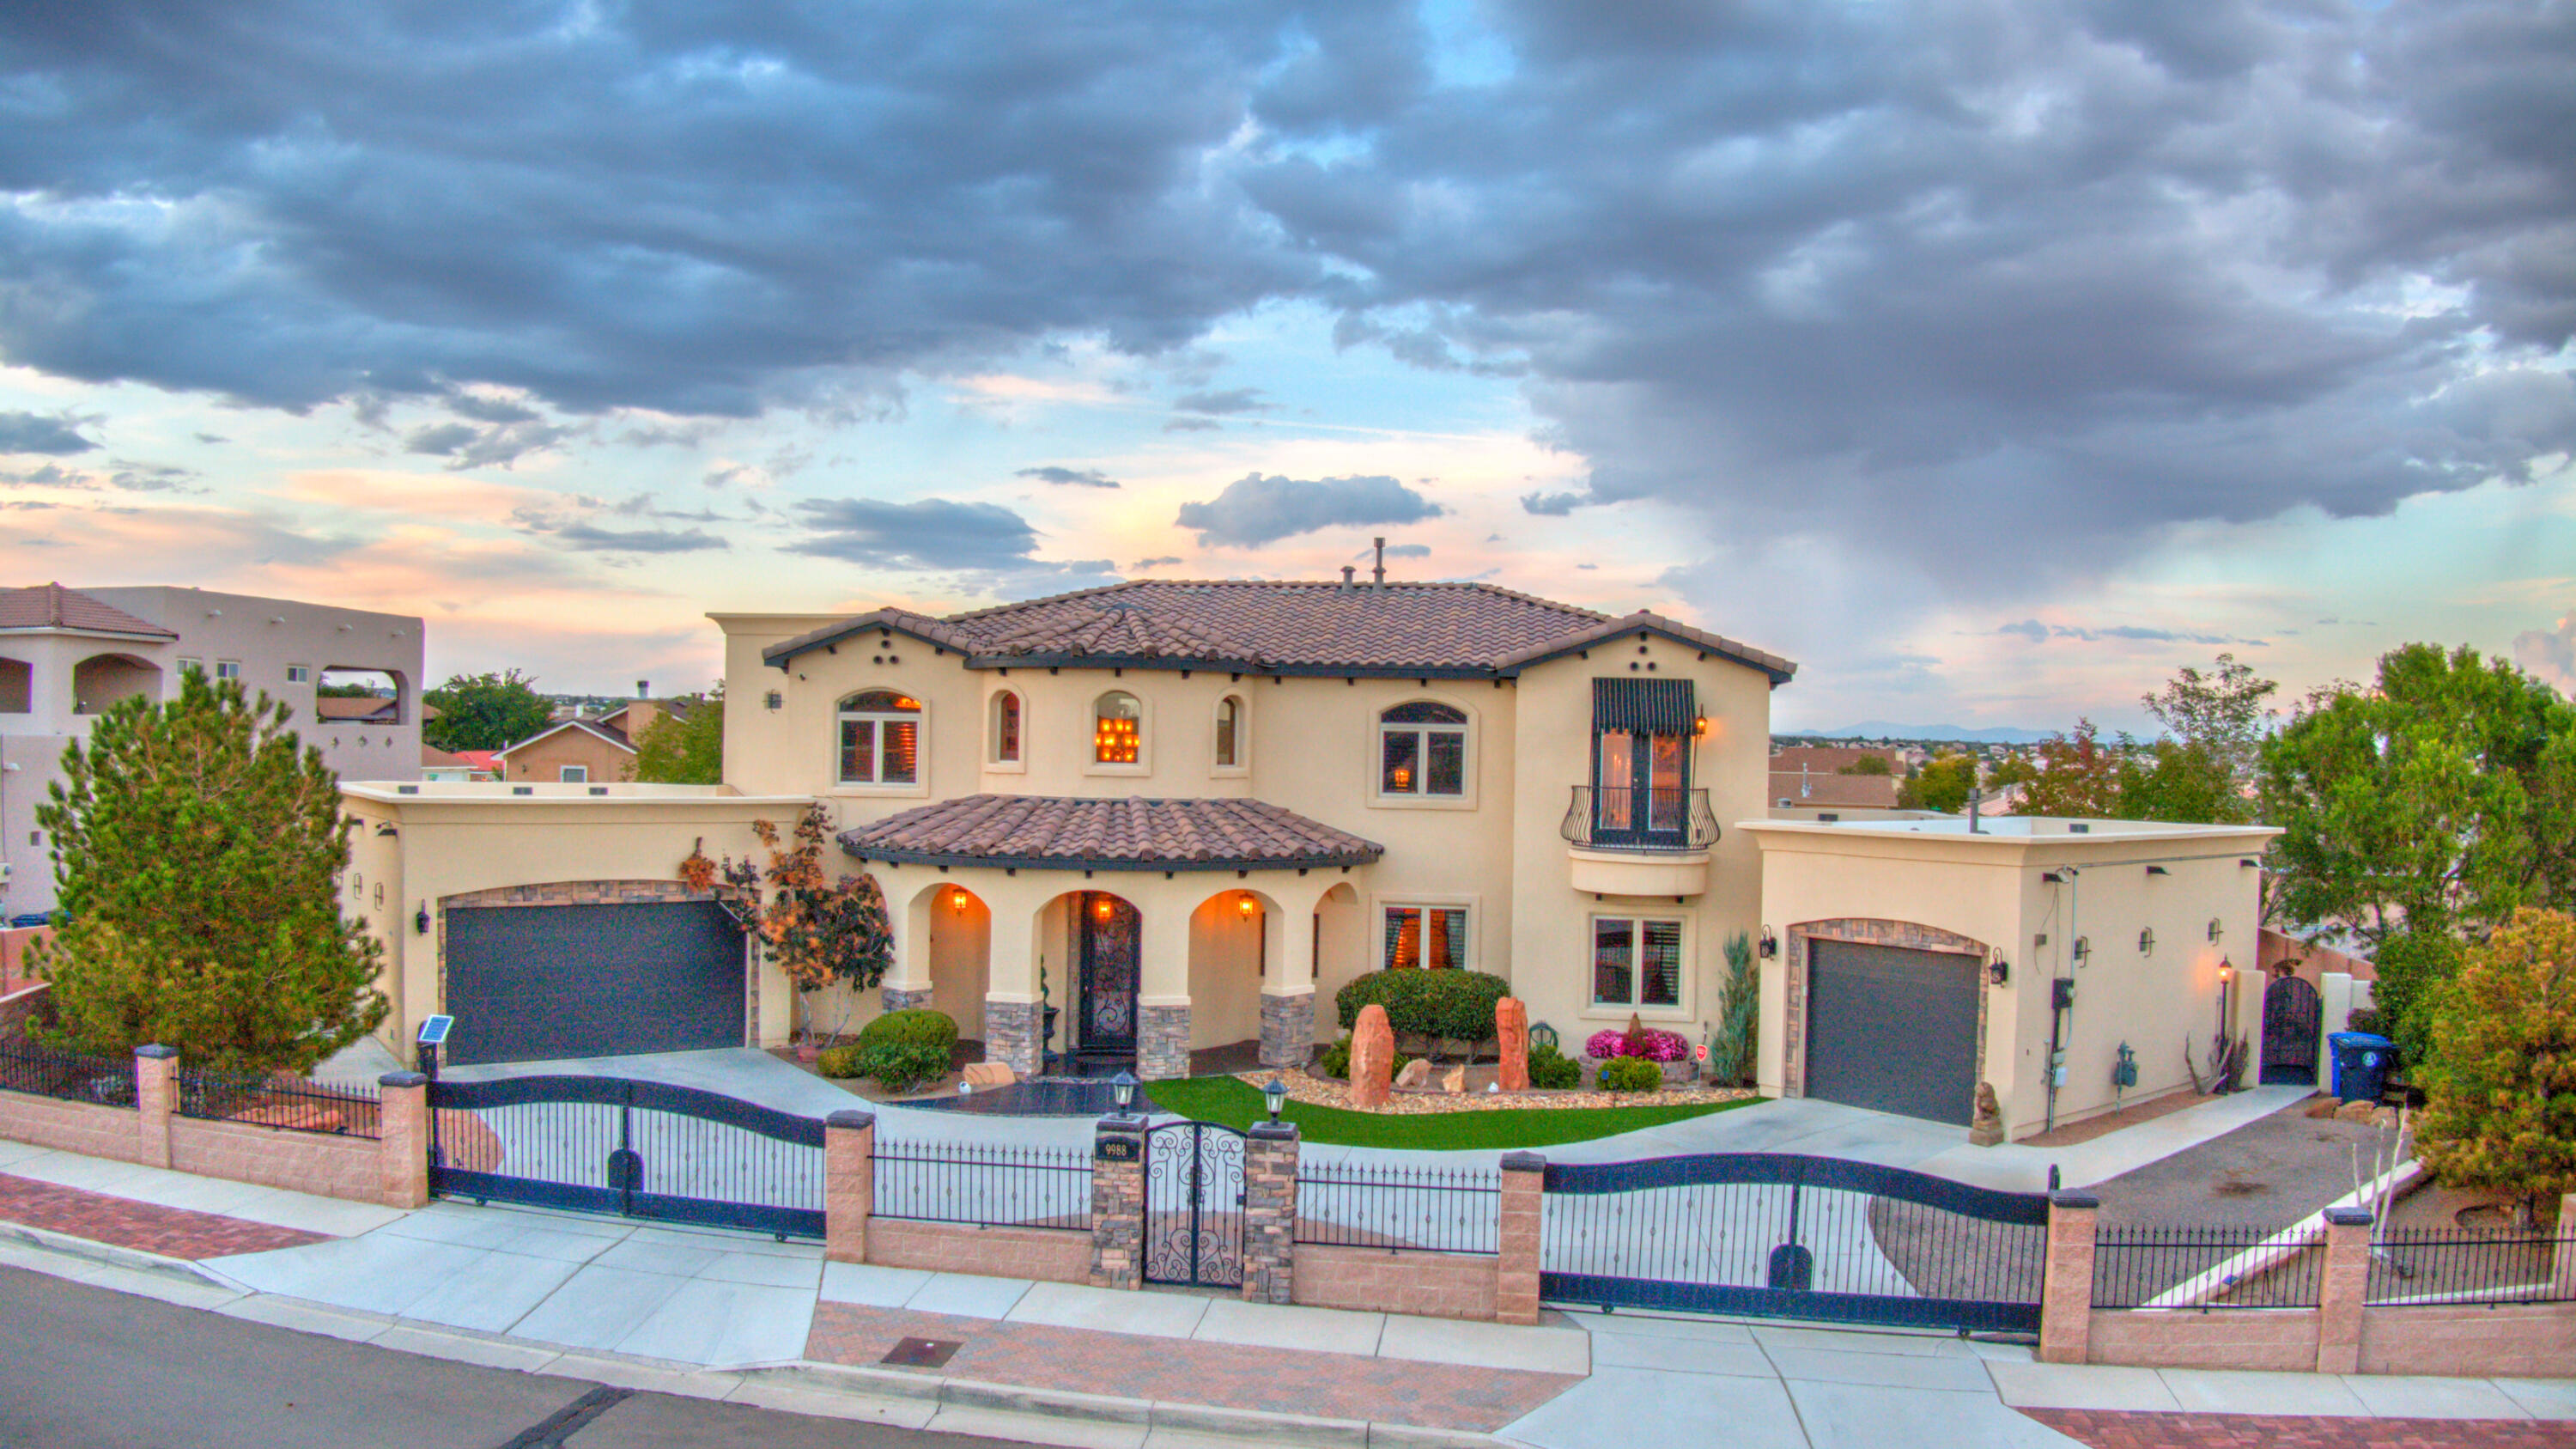 Custom Tuscan Style home by Sandia Builders has it ALL!  Two lots w/Side Yard Access. Two Owners Suites/In-Law Suite. Main Upstairs & In-Law down w/Side Entrance off Single Car Garage. Open Concept w/Dining Room, Large Living room, and Kitchen w/Breakfast Nook. Chefs Kitchen w/Gas Cooktop and Butler Pantry! All Custom Cabinets w/Granite Countertops and New Island. New Billiards/Entertaining Room opens to Backyard w/Outdoor Kitchen, Covered Patio, Fireplace, and Bball hoop. Upstairs has Loft  and 2 additional Bedrooms one w/Balcony facing Northeast catching view of the Sandias! Gated driveway w/west gate on automatic opener.  Plastered accent walls w/hand painted fireplace, pillars, accent ceilings, owners suite bathroom, and nichos.  Floating staircase in entry way and TOO much to list...